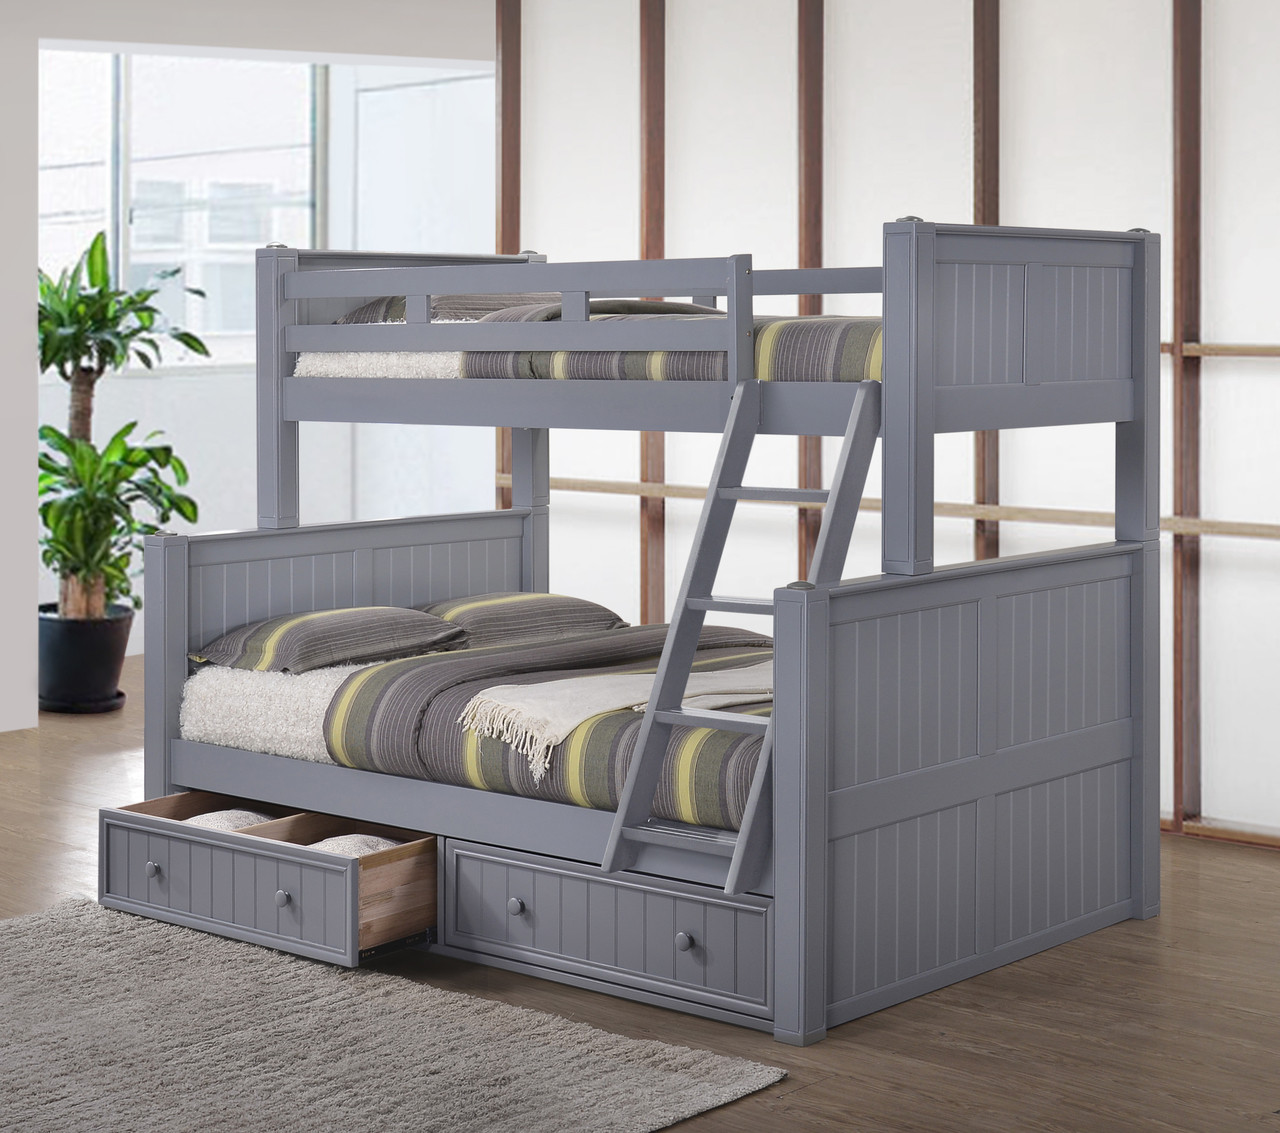 dillon blue twin full bunk bed that separates. Black Bedroom Furniture Sets. Home Design Ideas